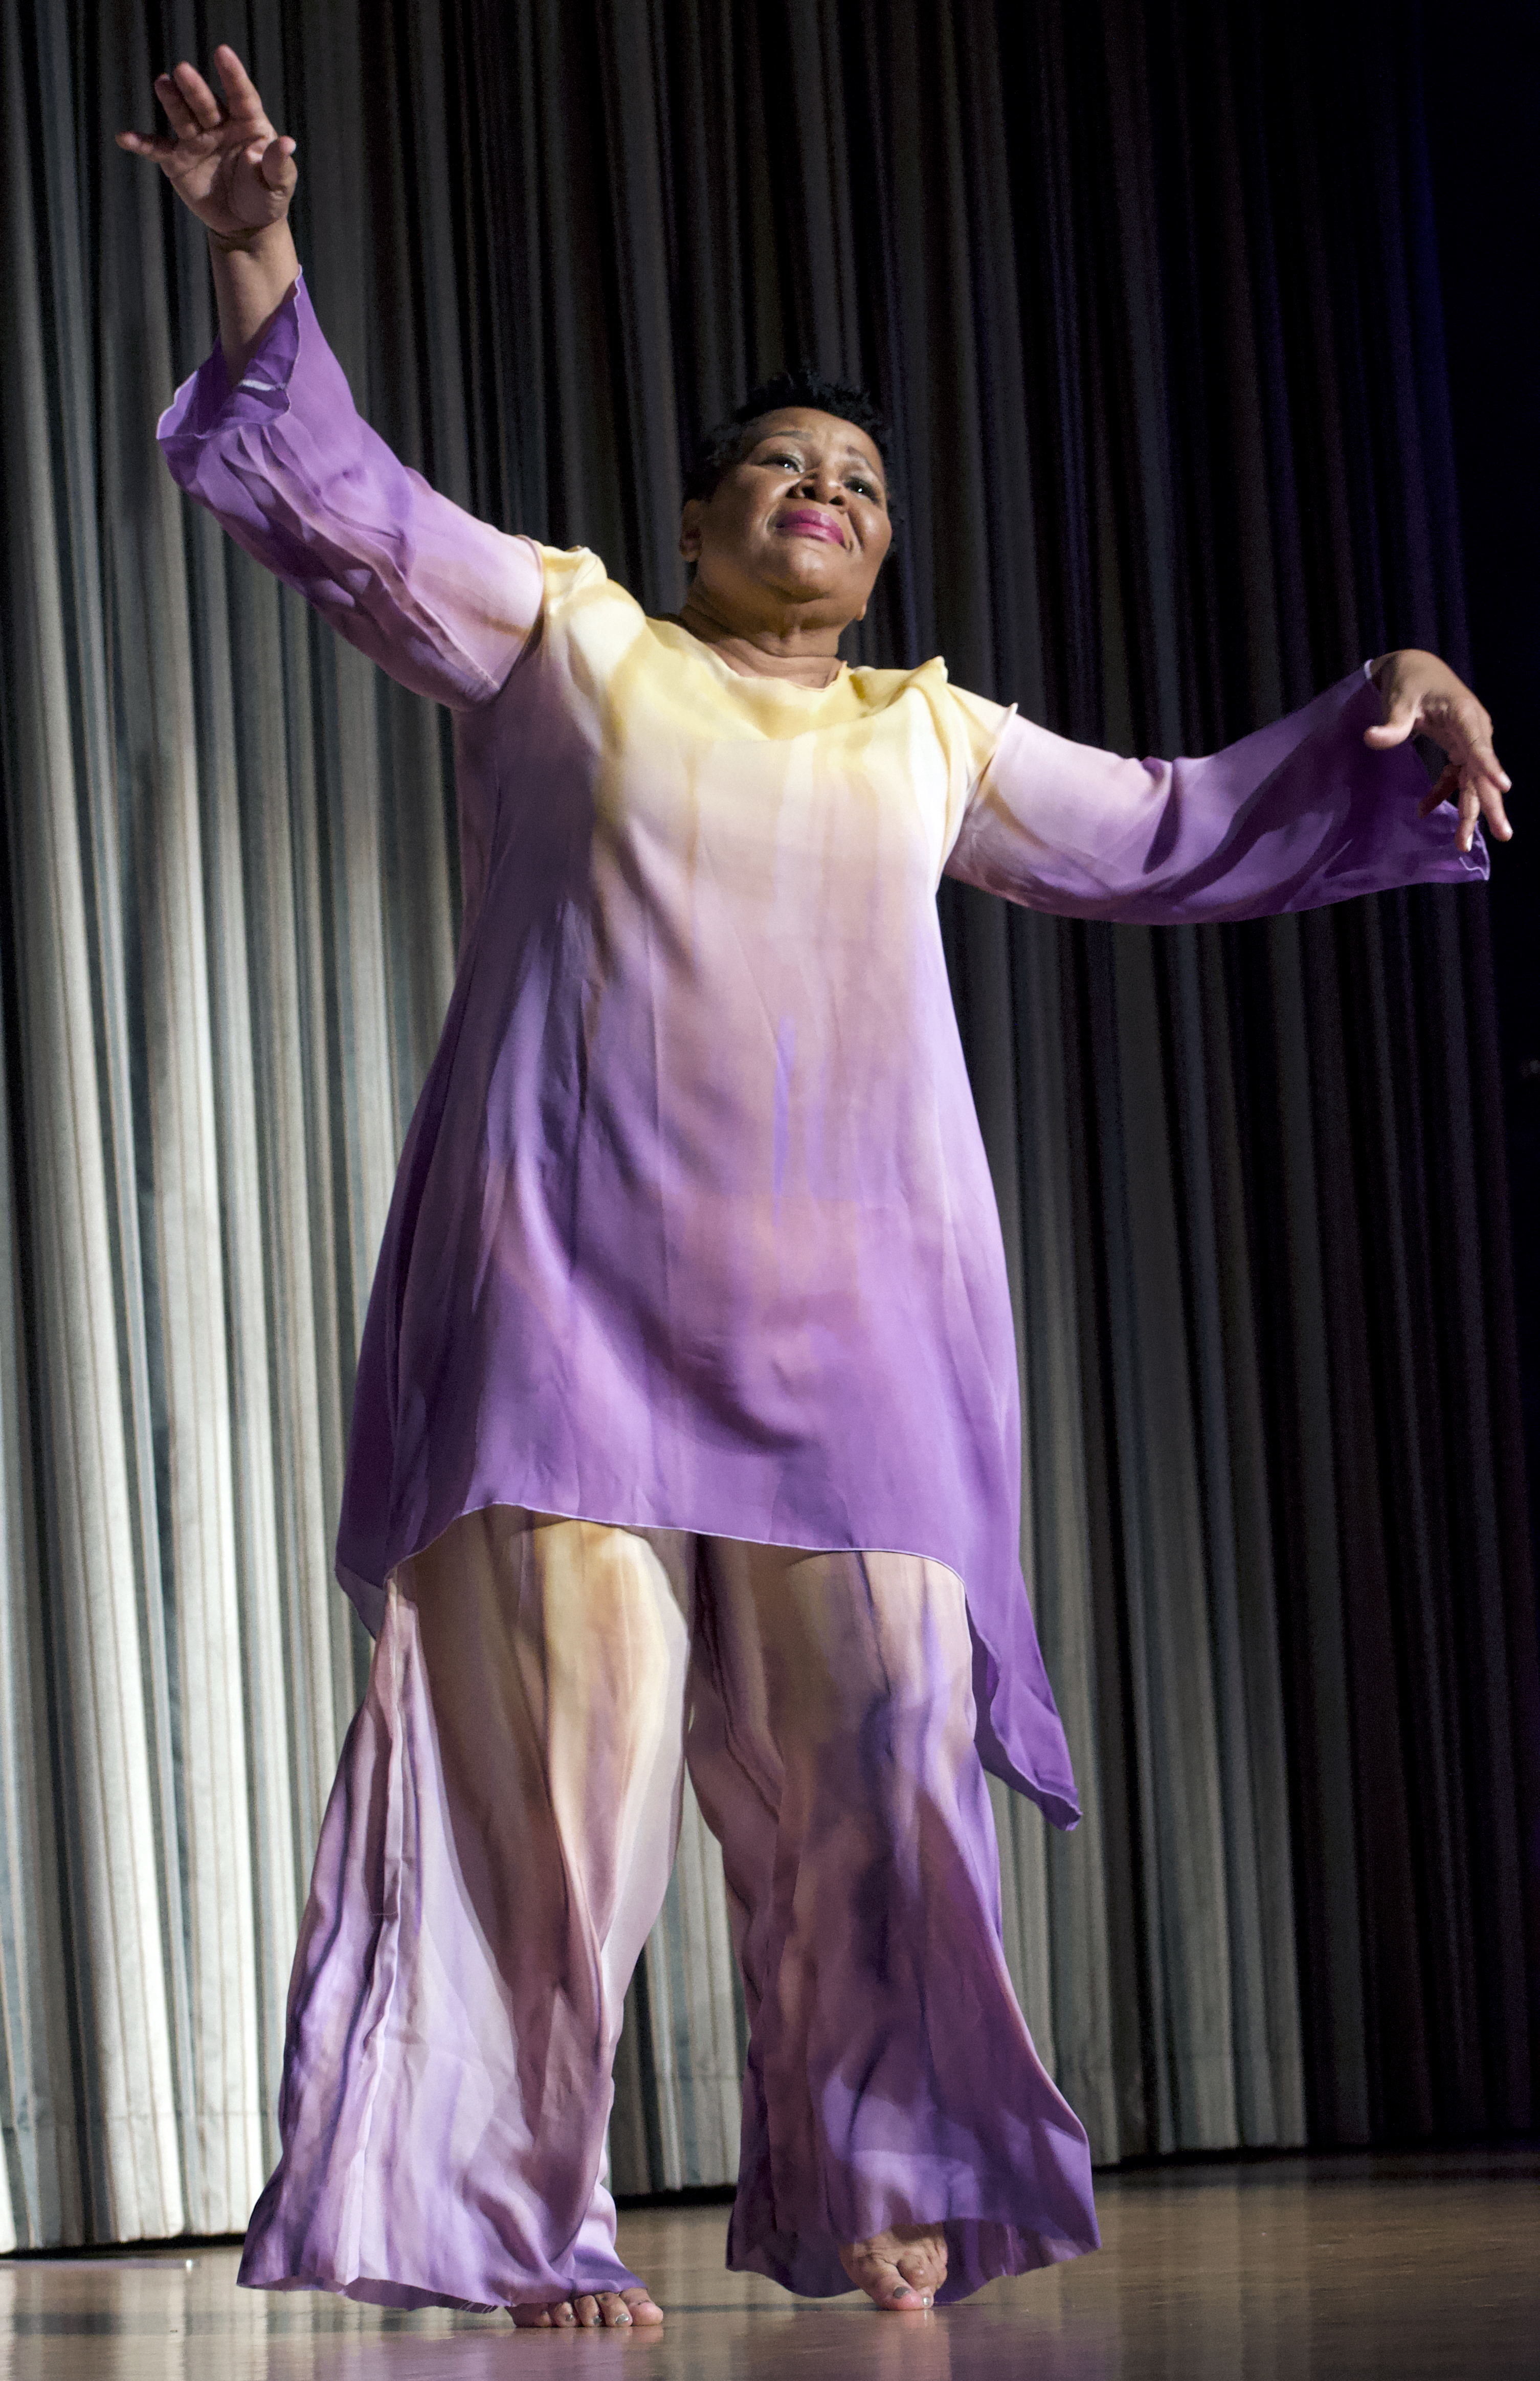 Alice Marie Johnson brought praise dance to the religious services where she was imprisoned in Forth Worth, Texas. During a recent celebration at The Peabody, she performed one of the dances. (Photo: Karanja A. Ajanaku)